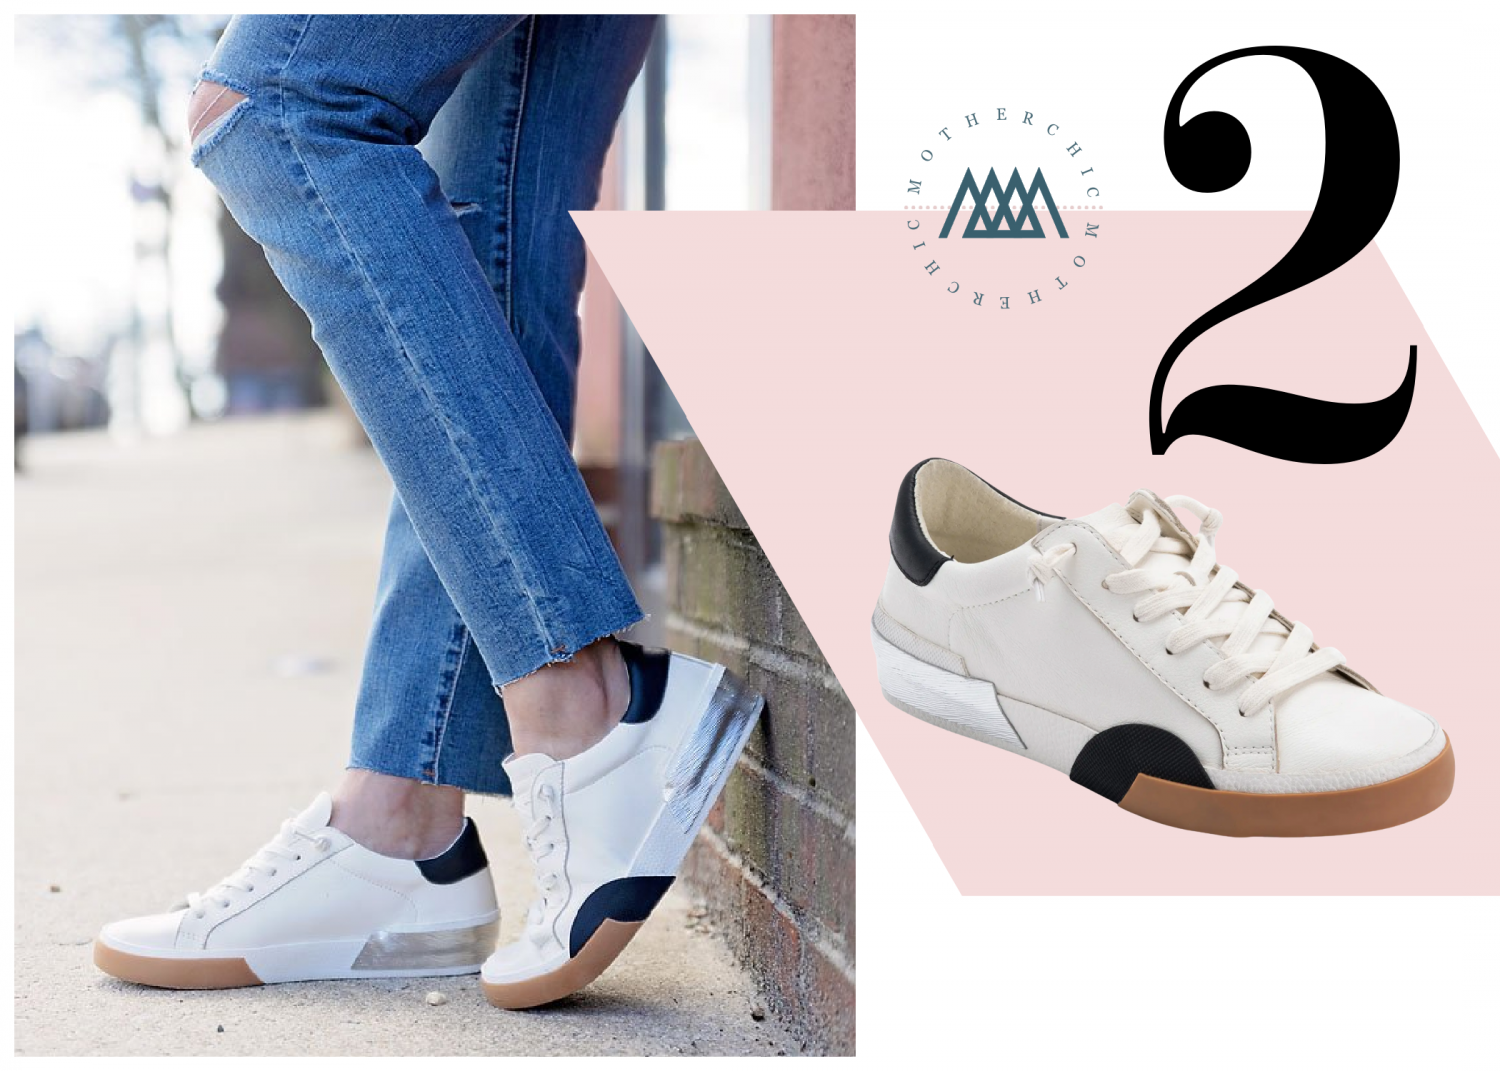 the motherchic wearing dolce vita sneakers